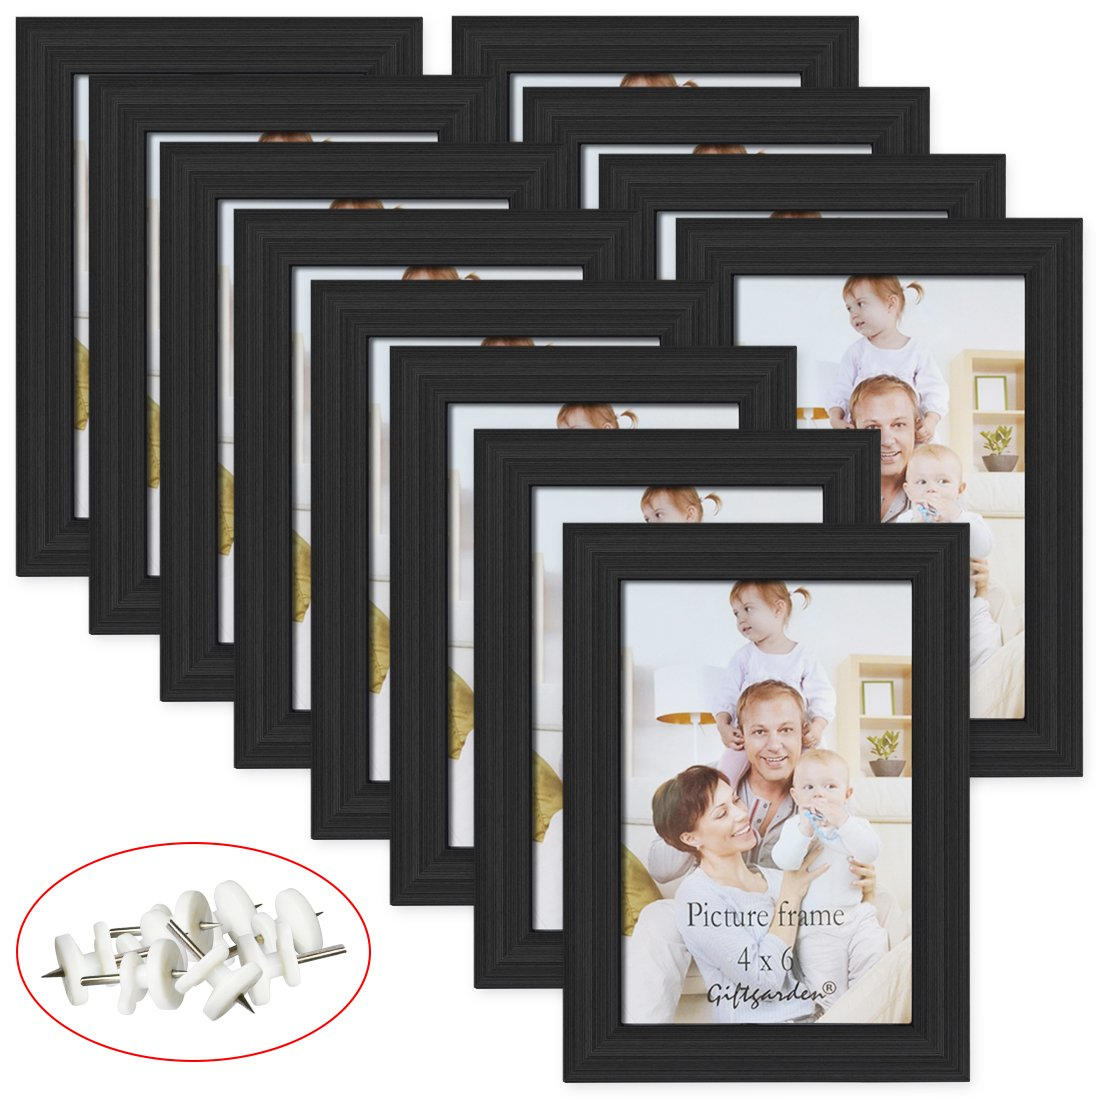 Giftgarden 4x6 Picture Frame Black Photo Frames for Wall or Tabletop, Set of 12